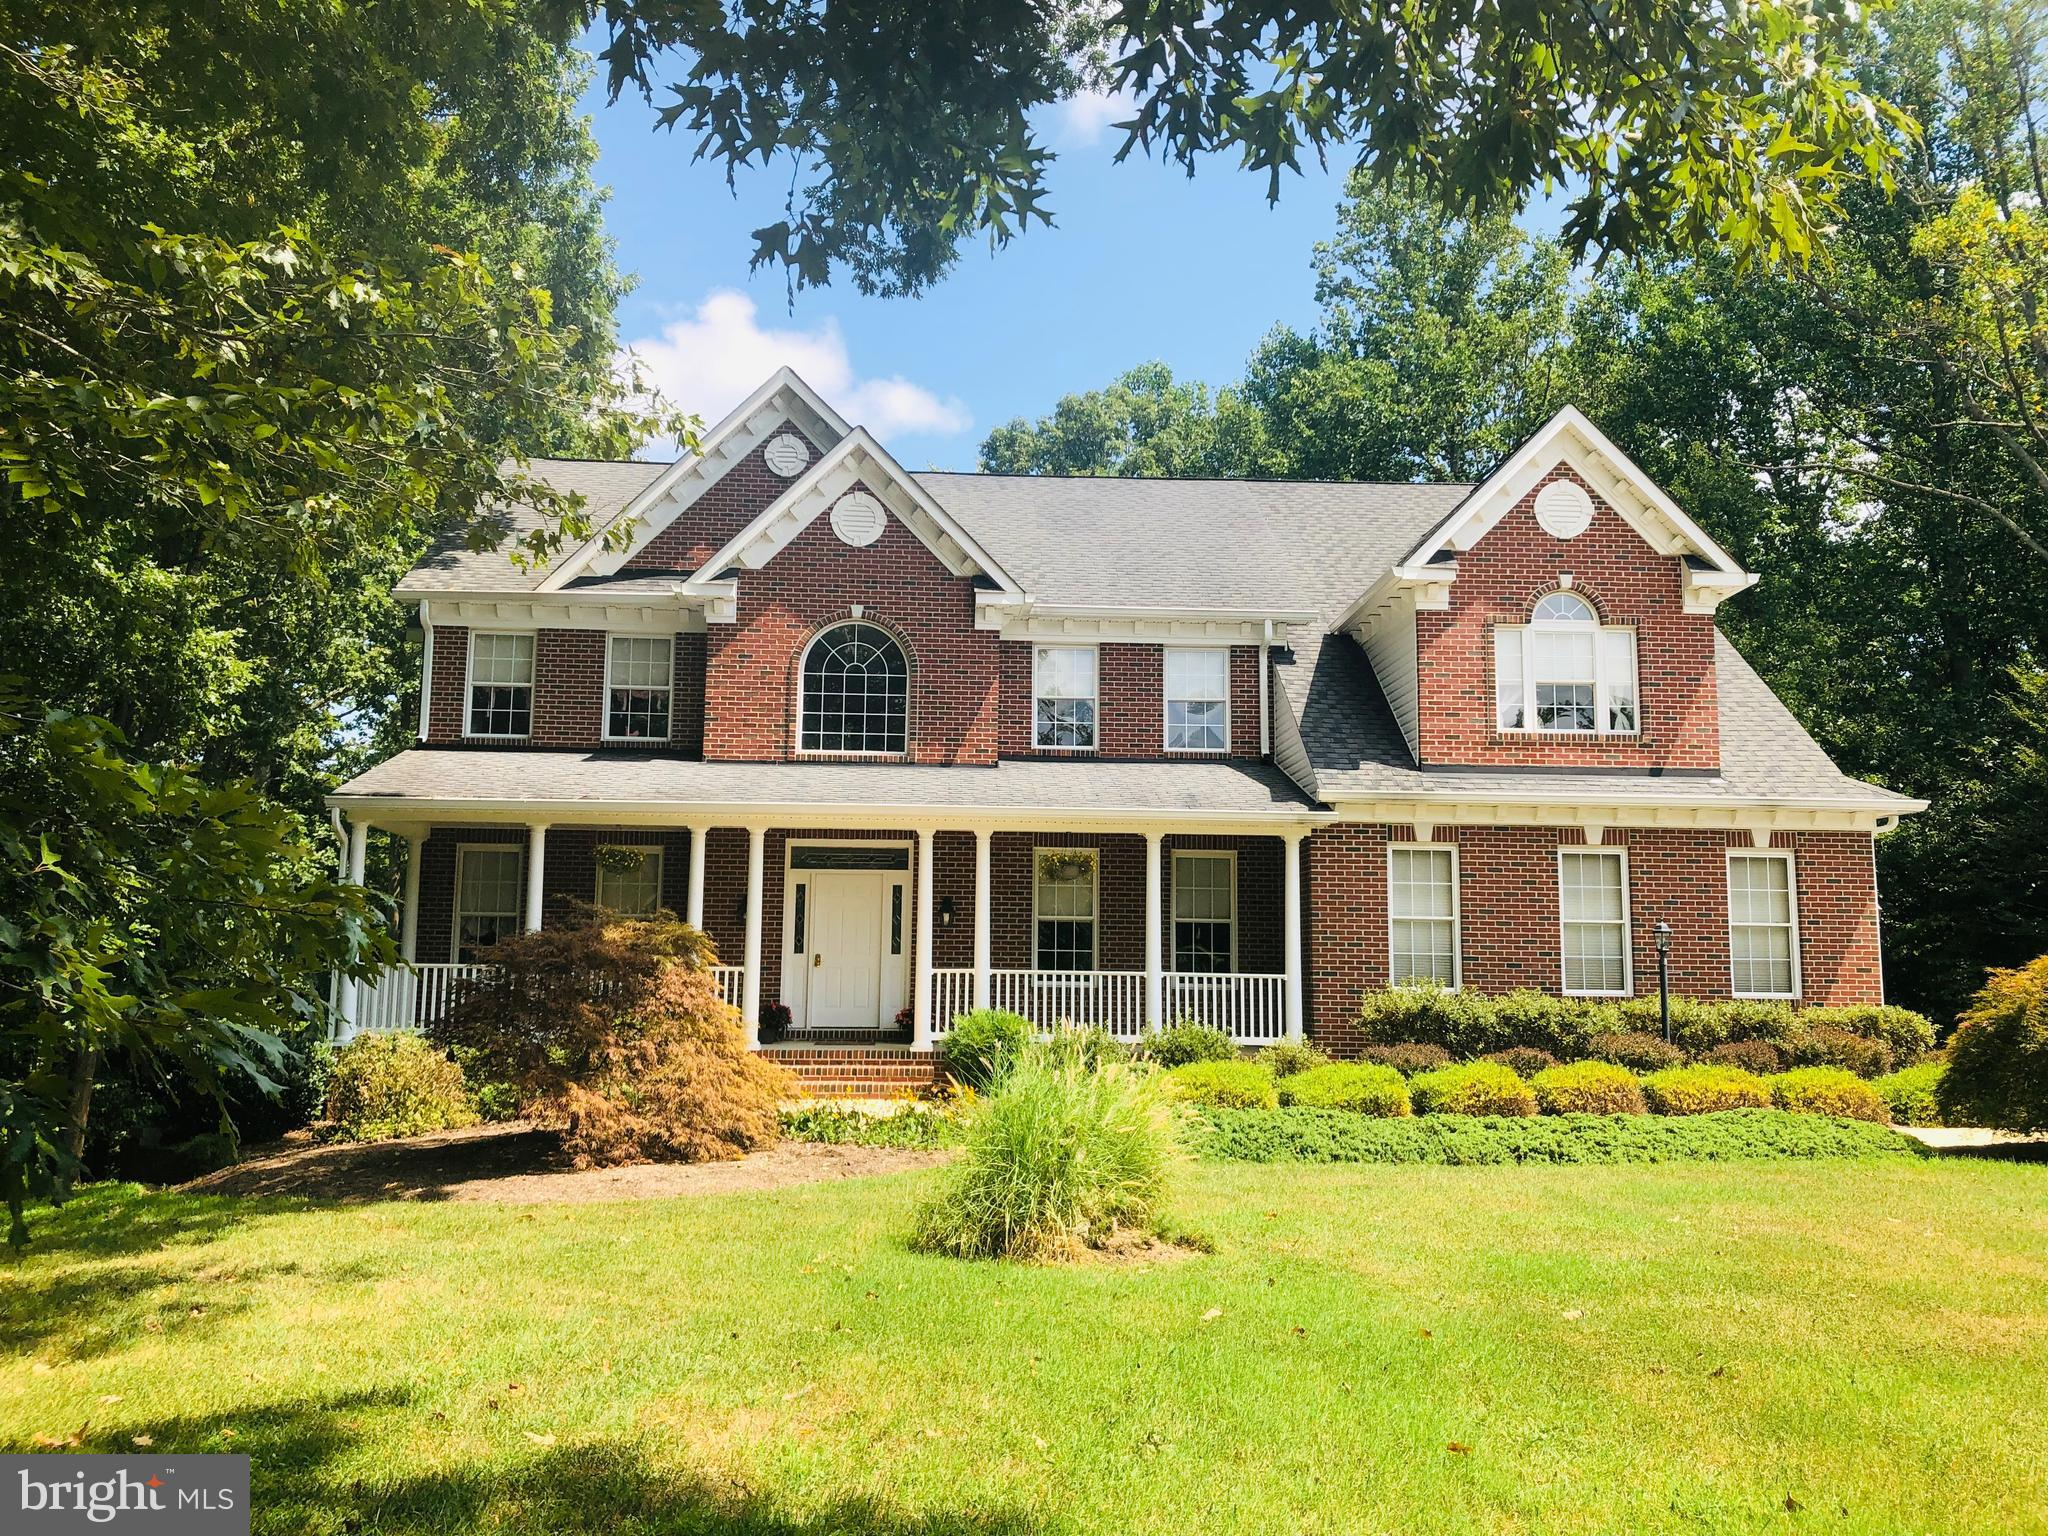 """""""The Crown Jewel of the Neighborhood!"""" This beautiful home sits on over 4 acres in a great northern"""